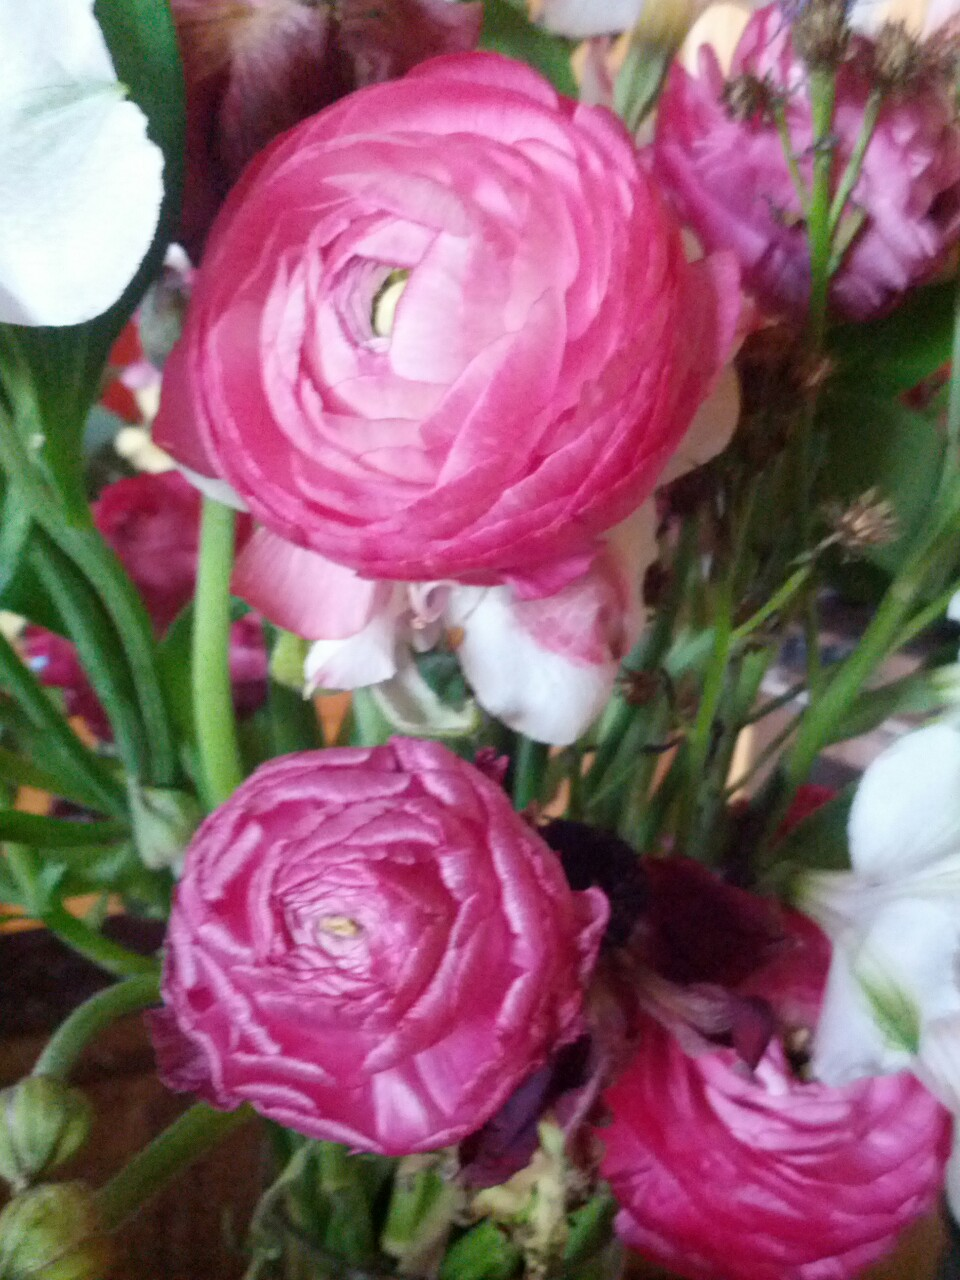 Valentine's Day ranunculus finally blooming!